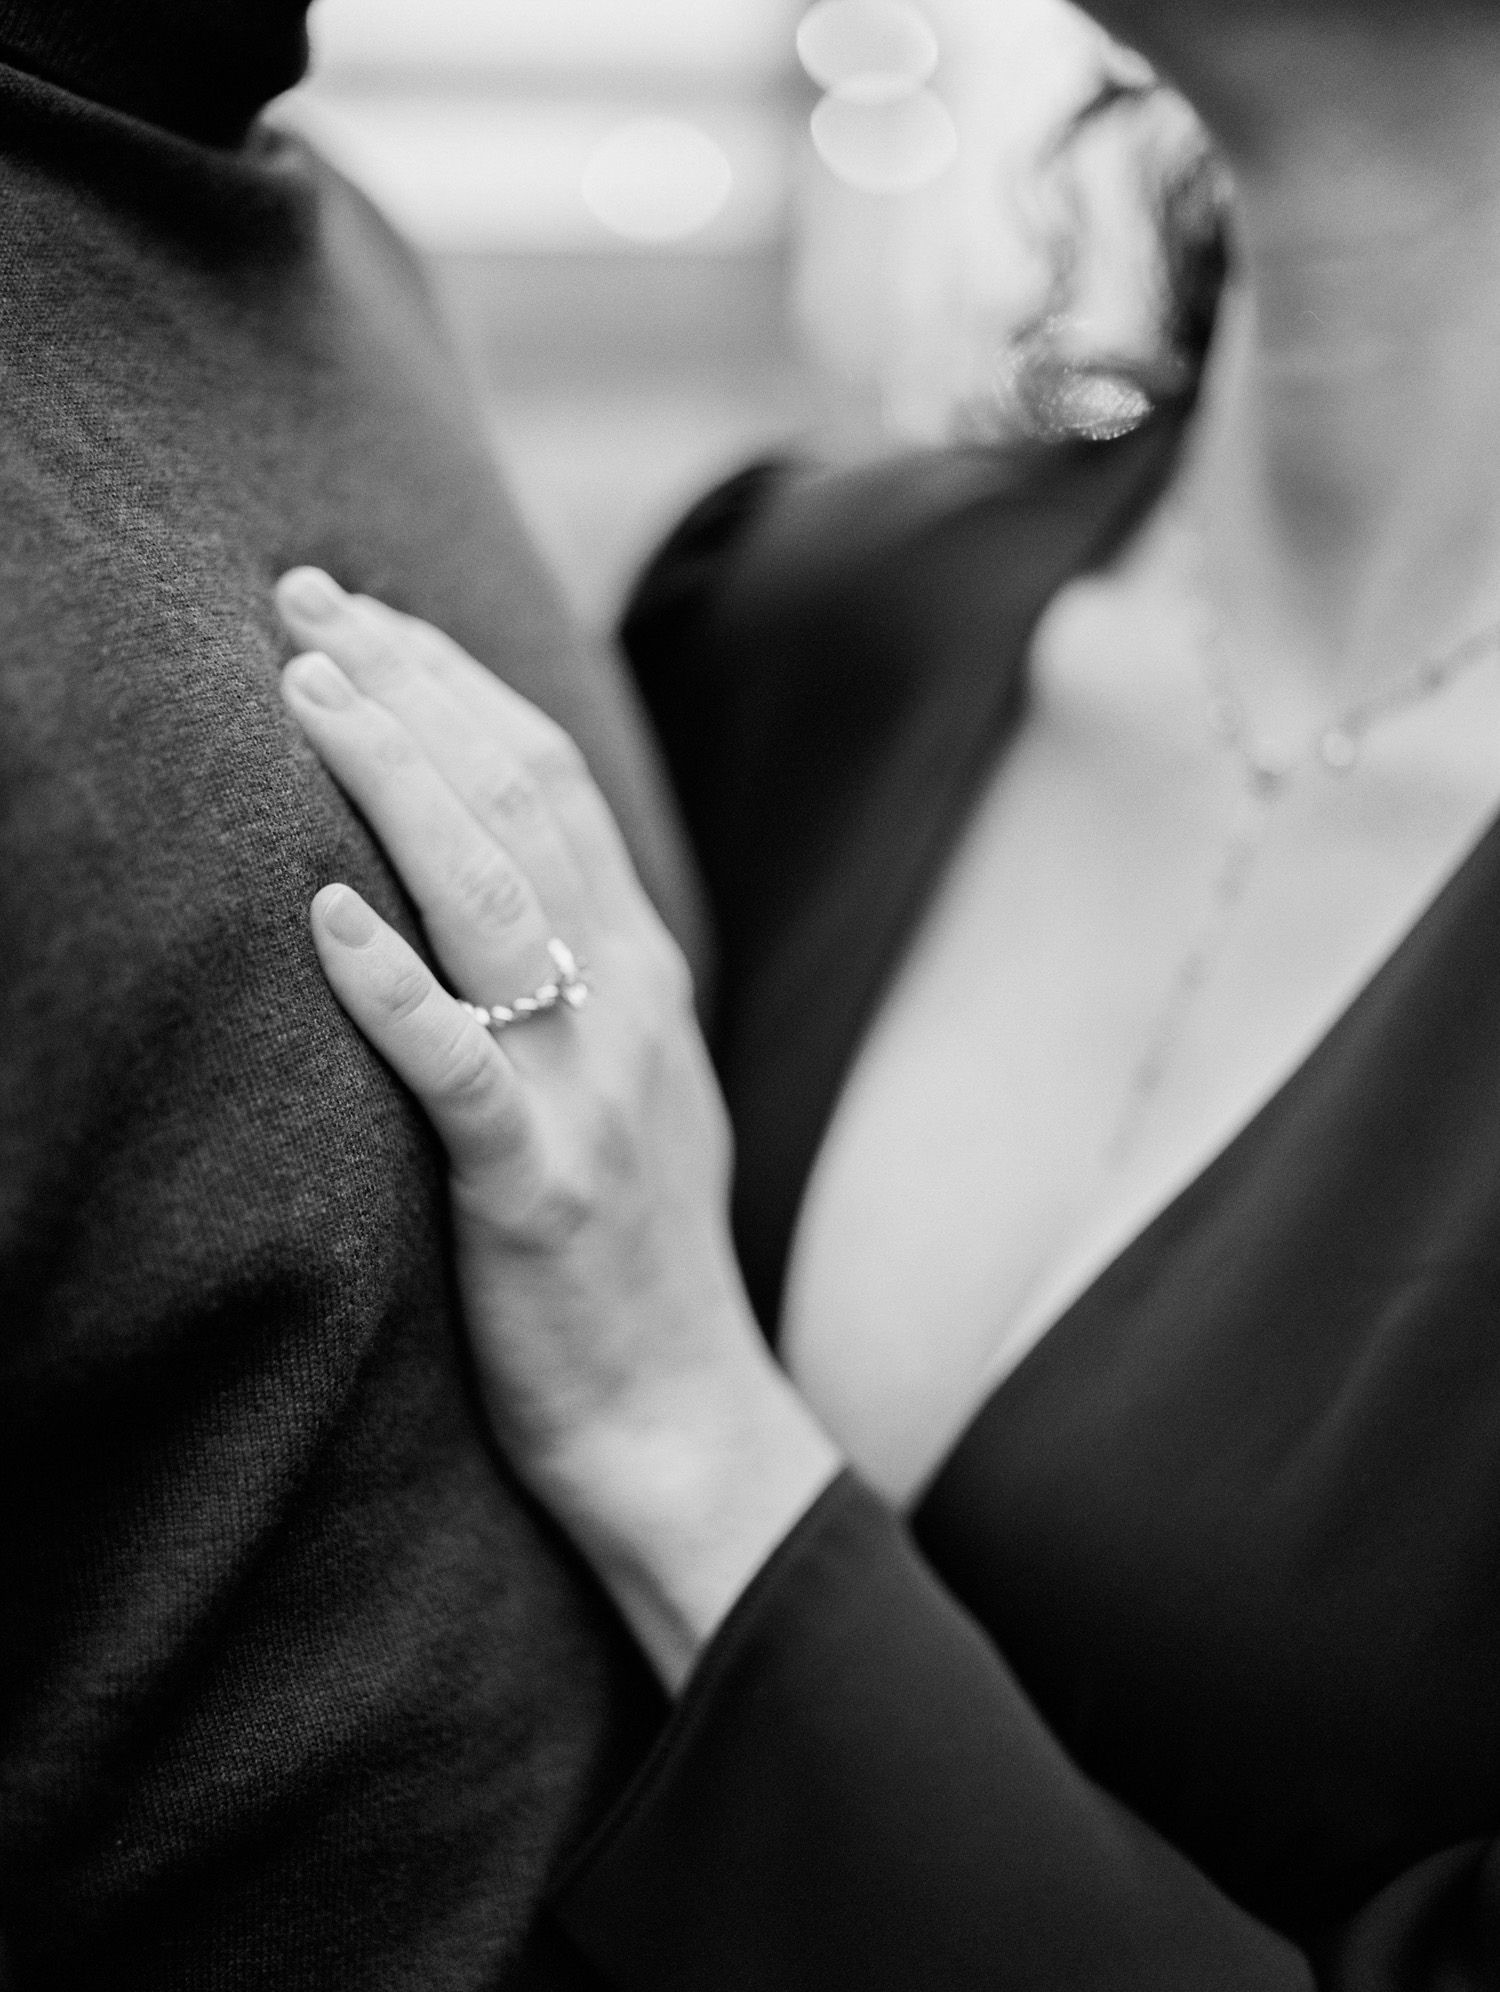 a woman's hand with an oval diamond engagement ring rests on her love's chest in soft focus